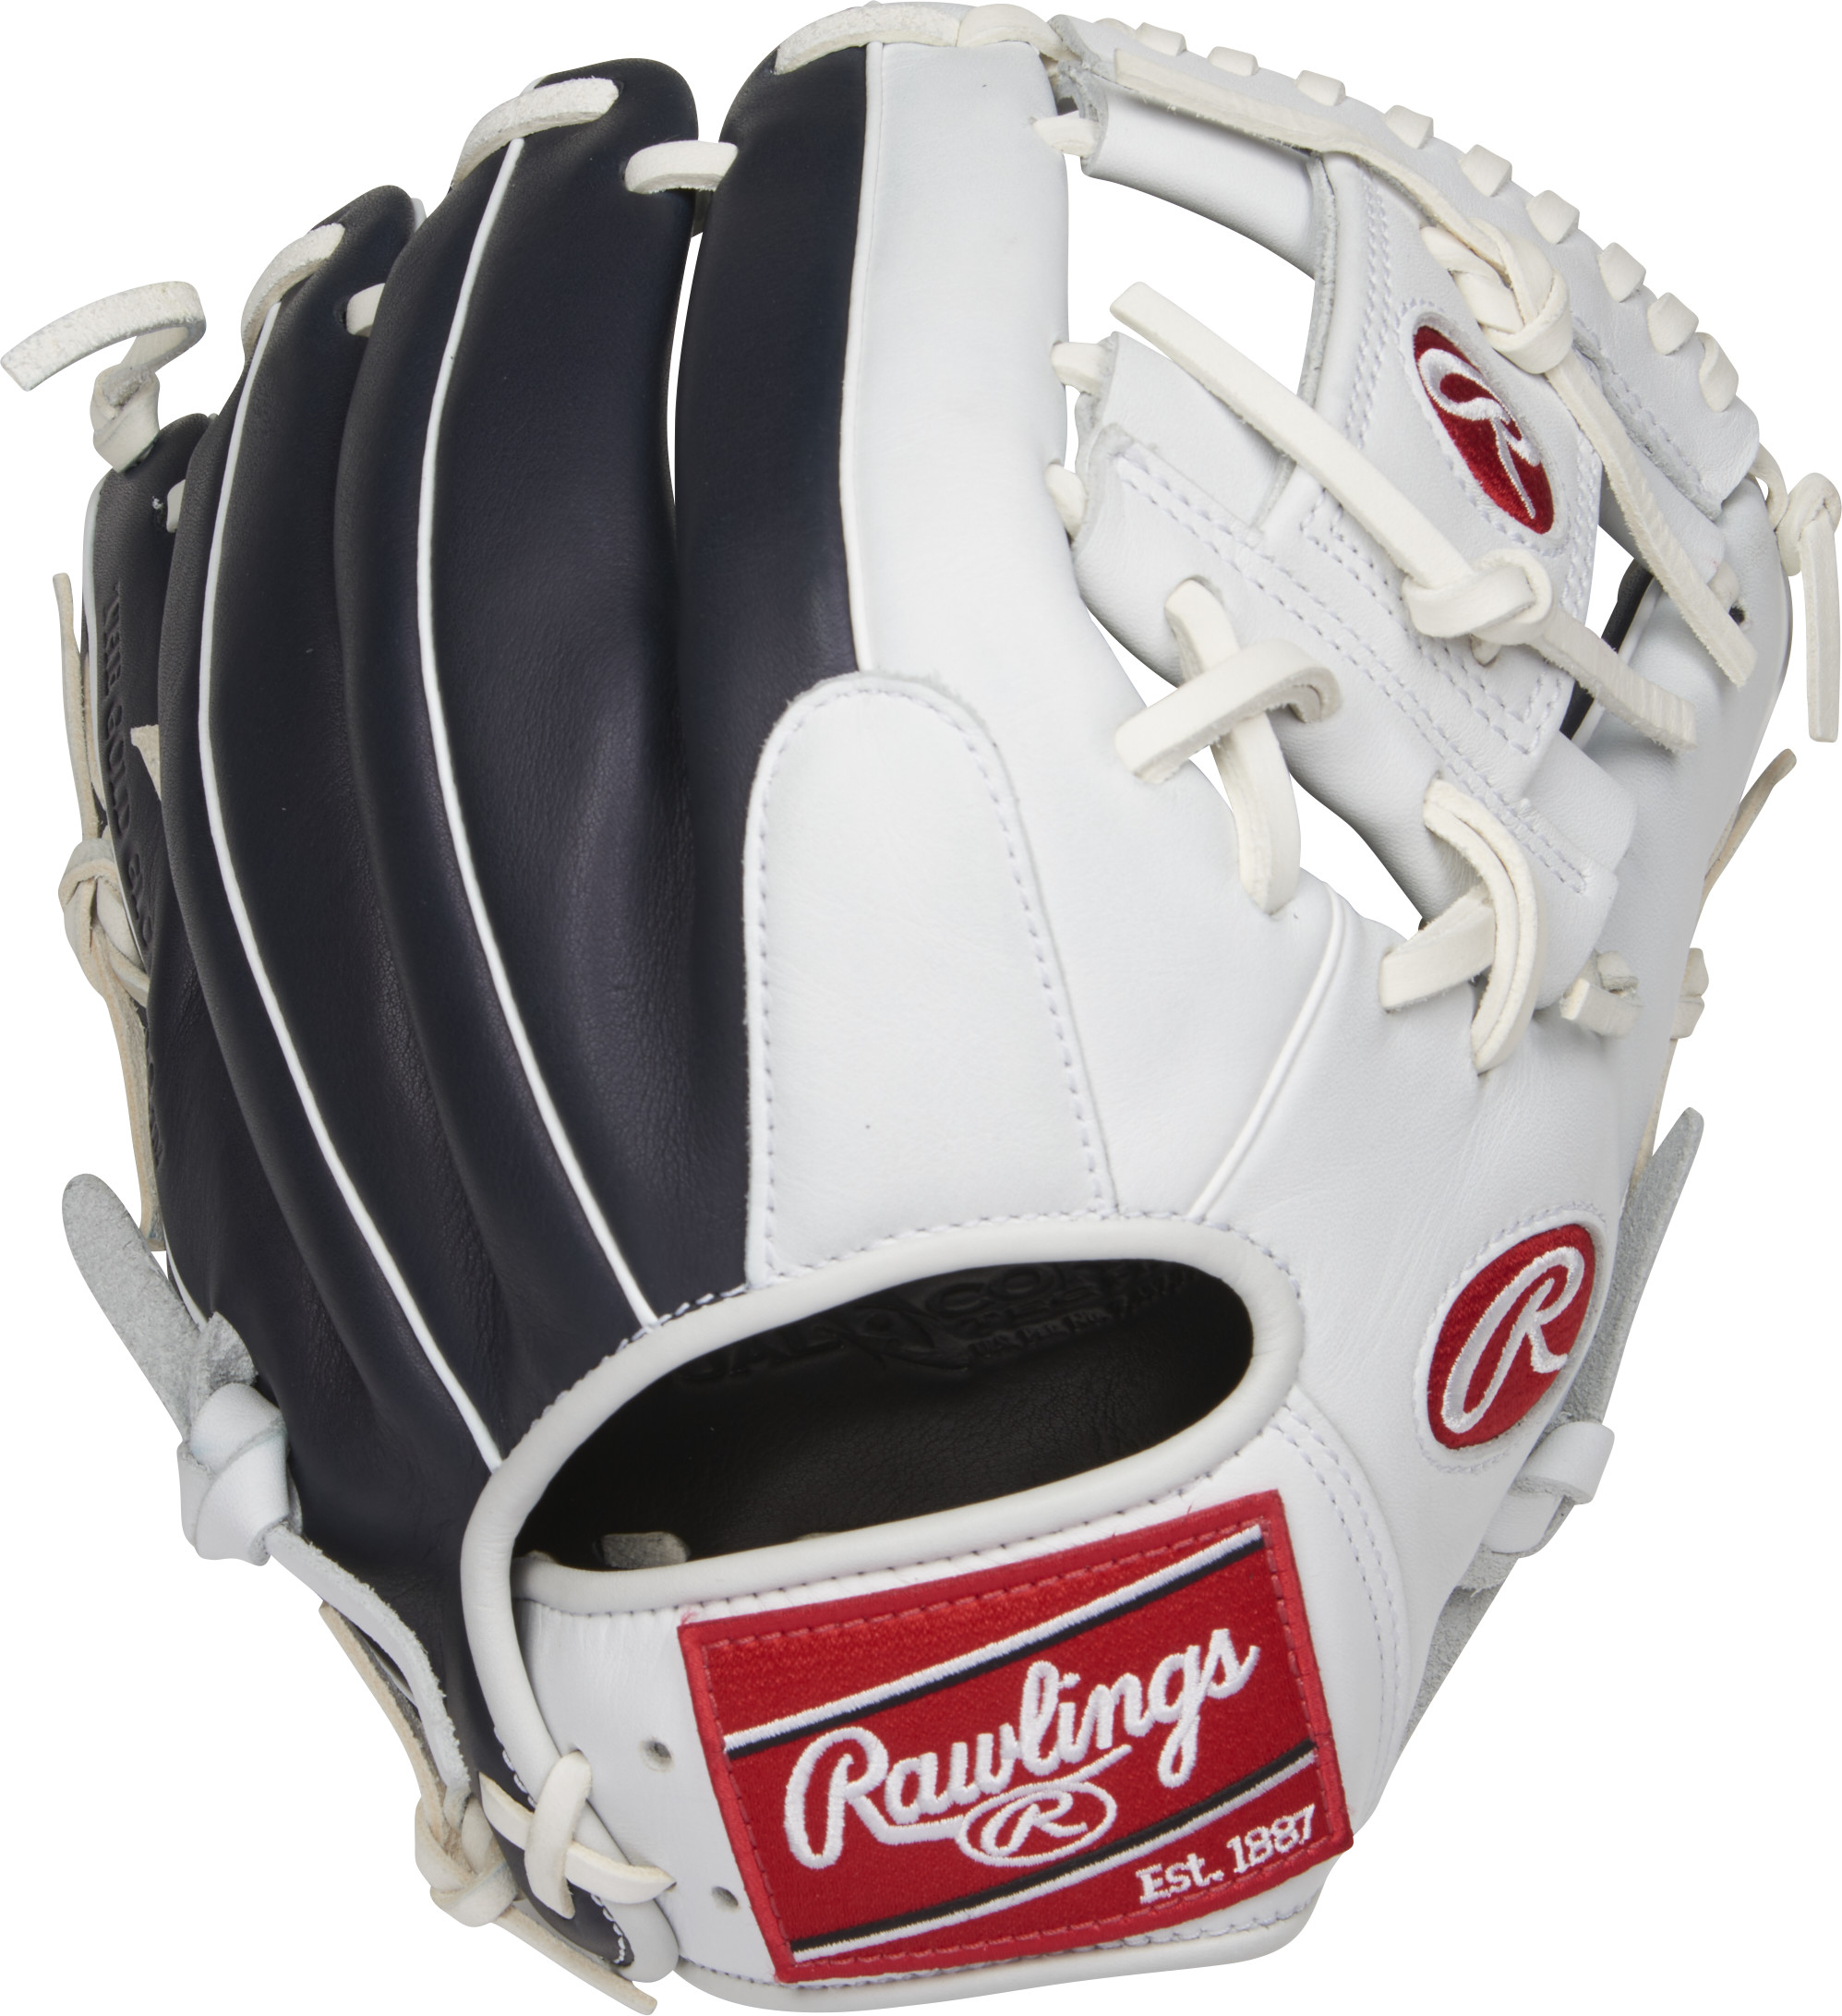 http://www.bestbatdeals.com/images/gloves/rawlings/GXLE204-2NW-2.jpg